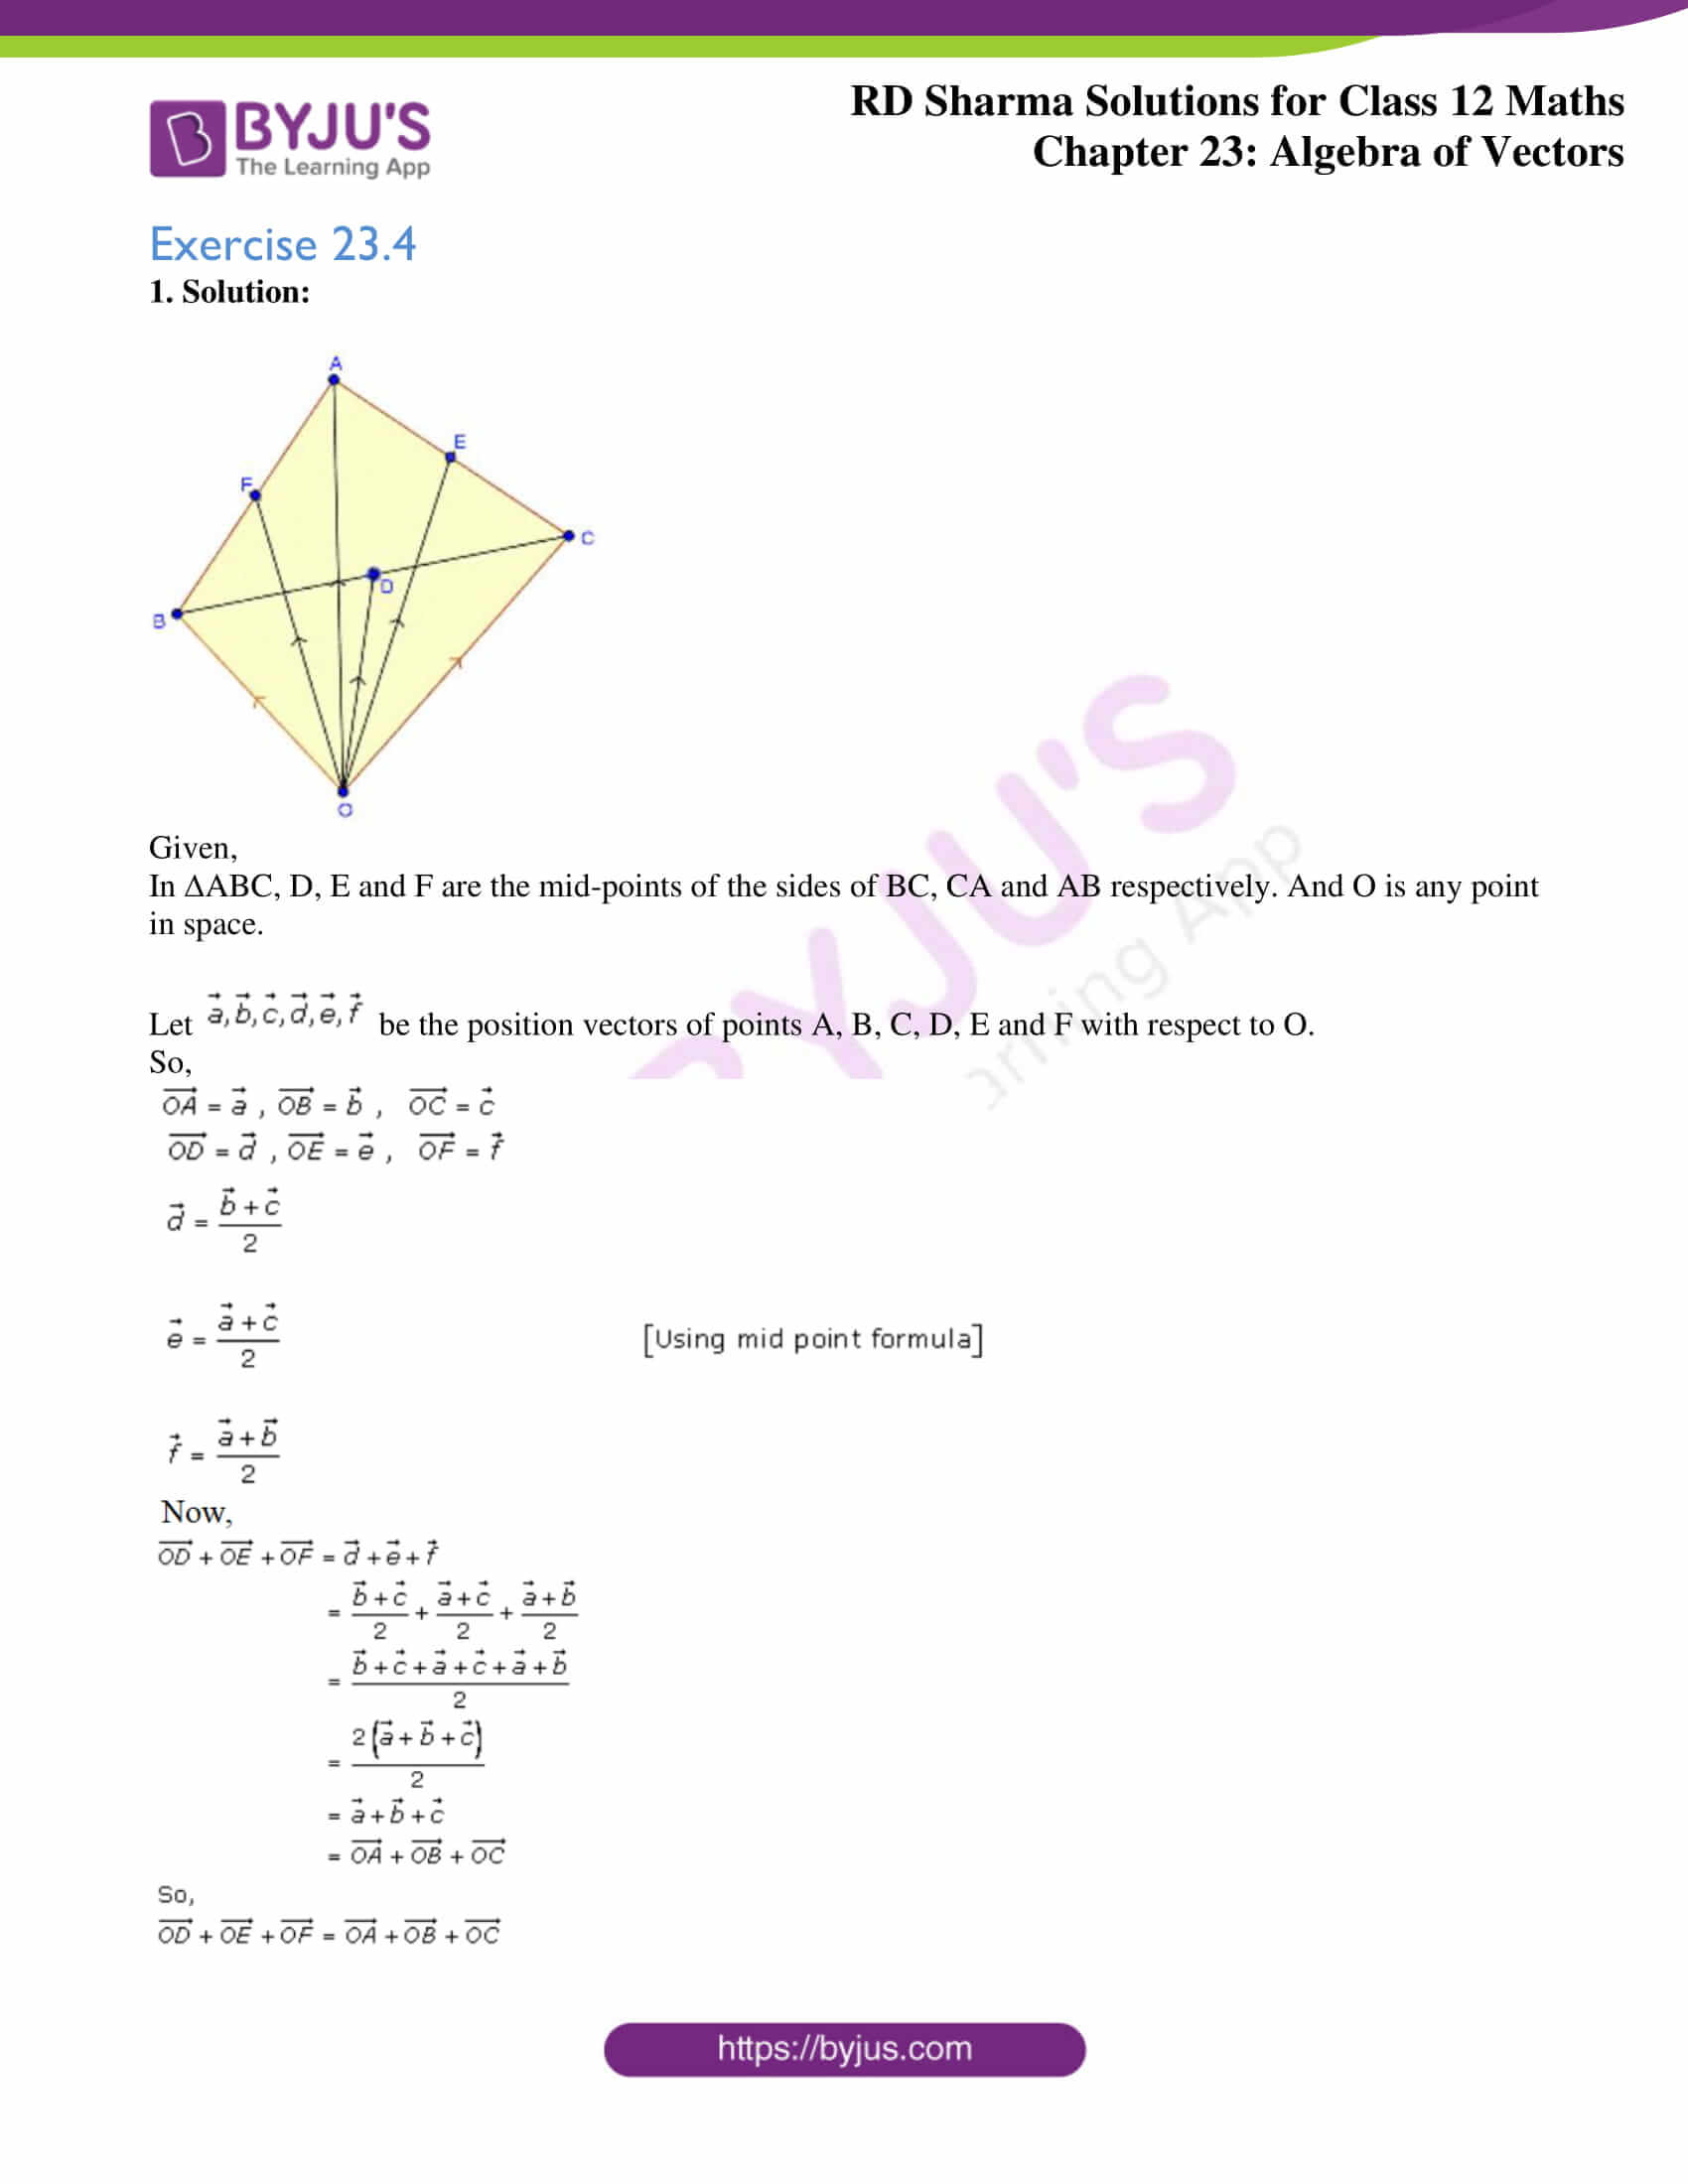 rd sharma class 12 solution for maths chapter 23 ex 4 1